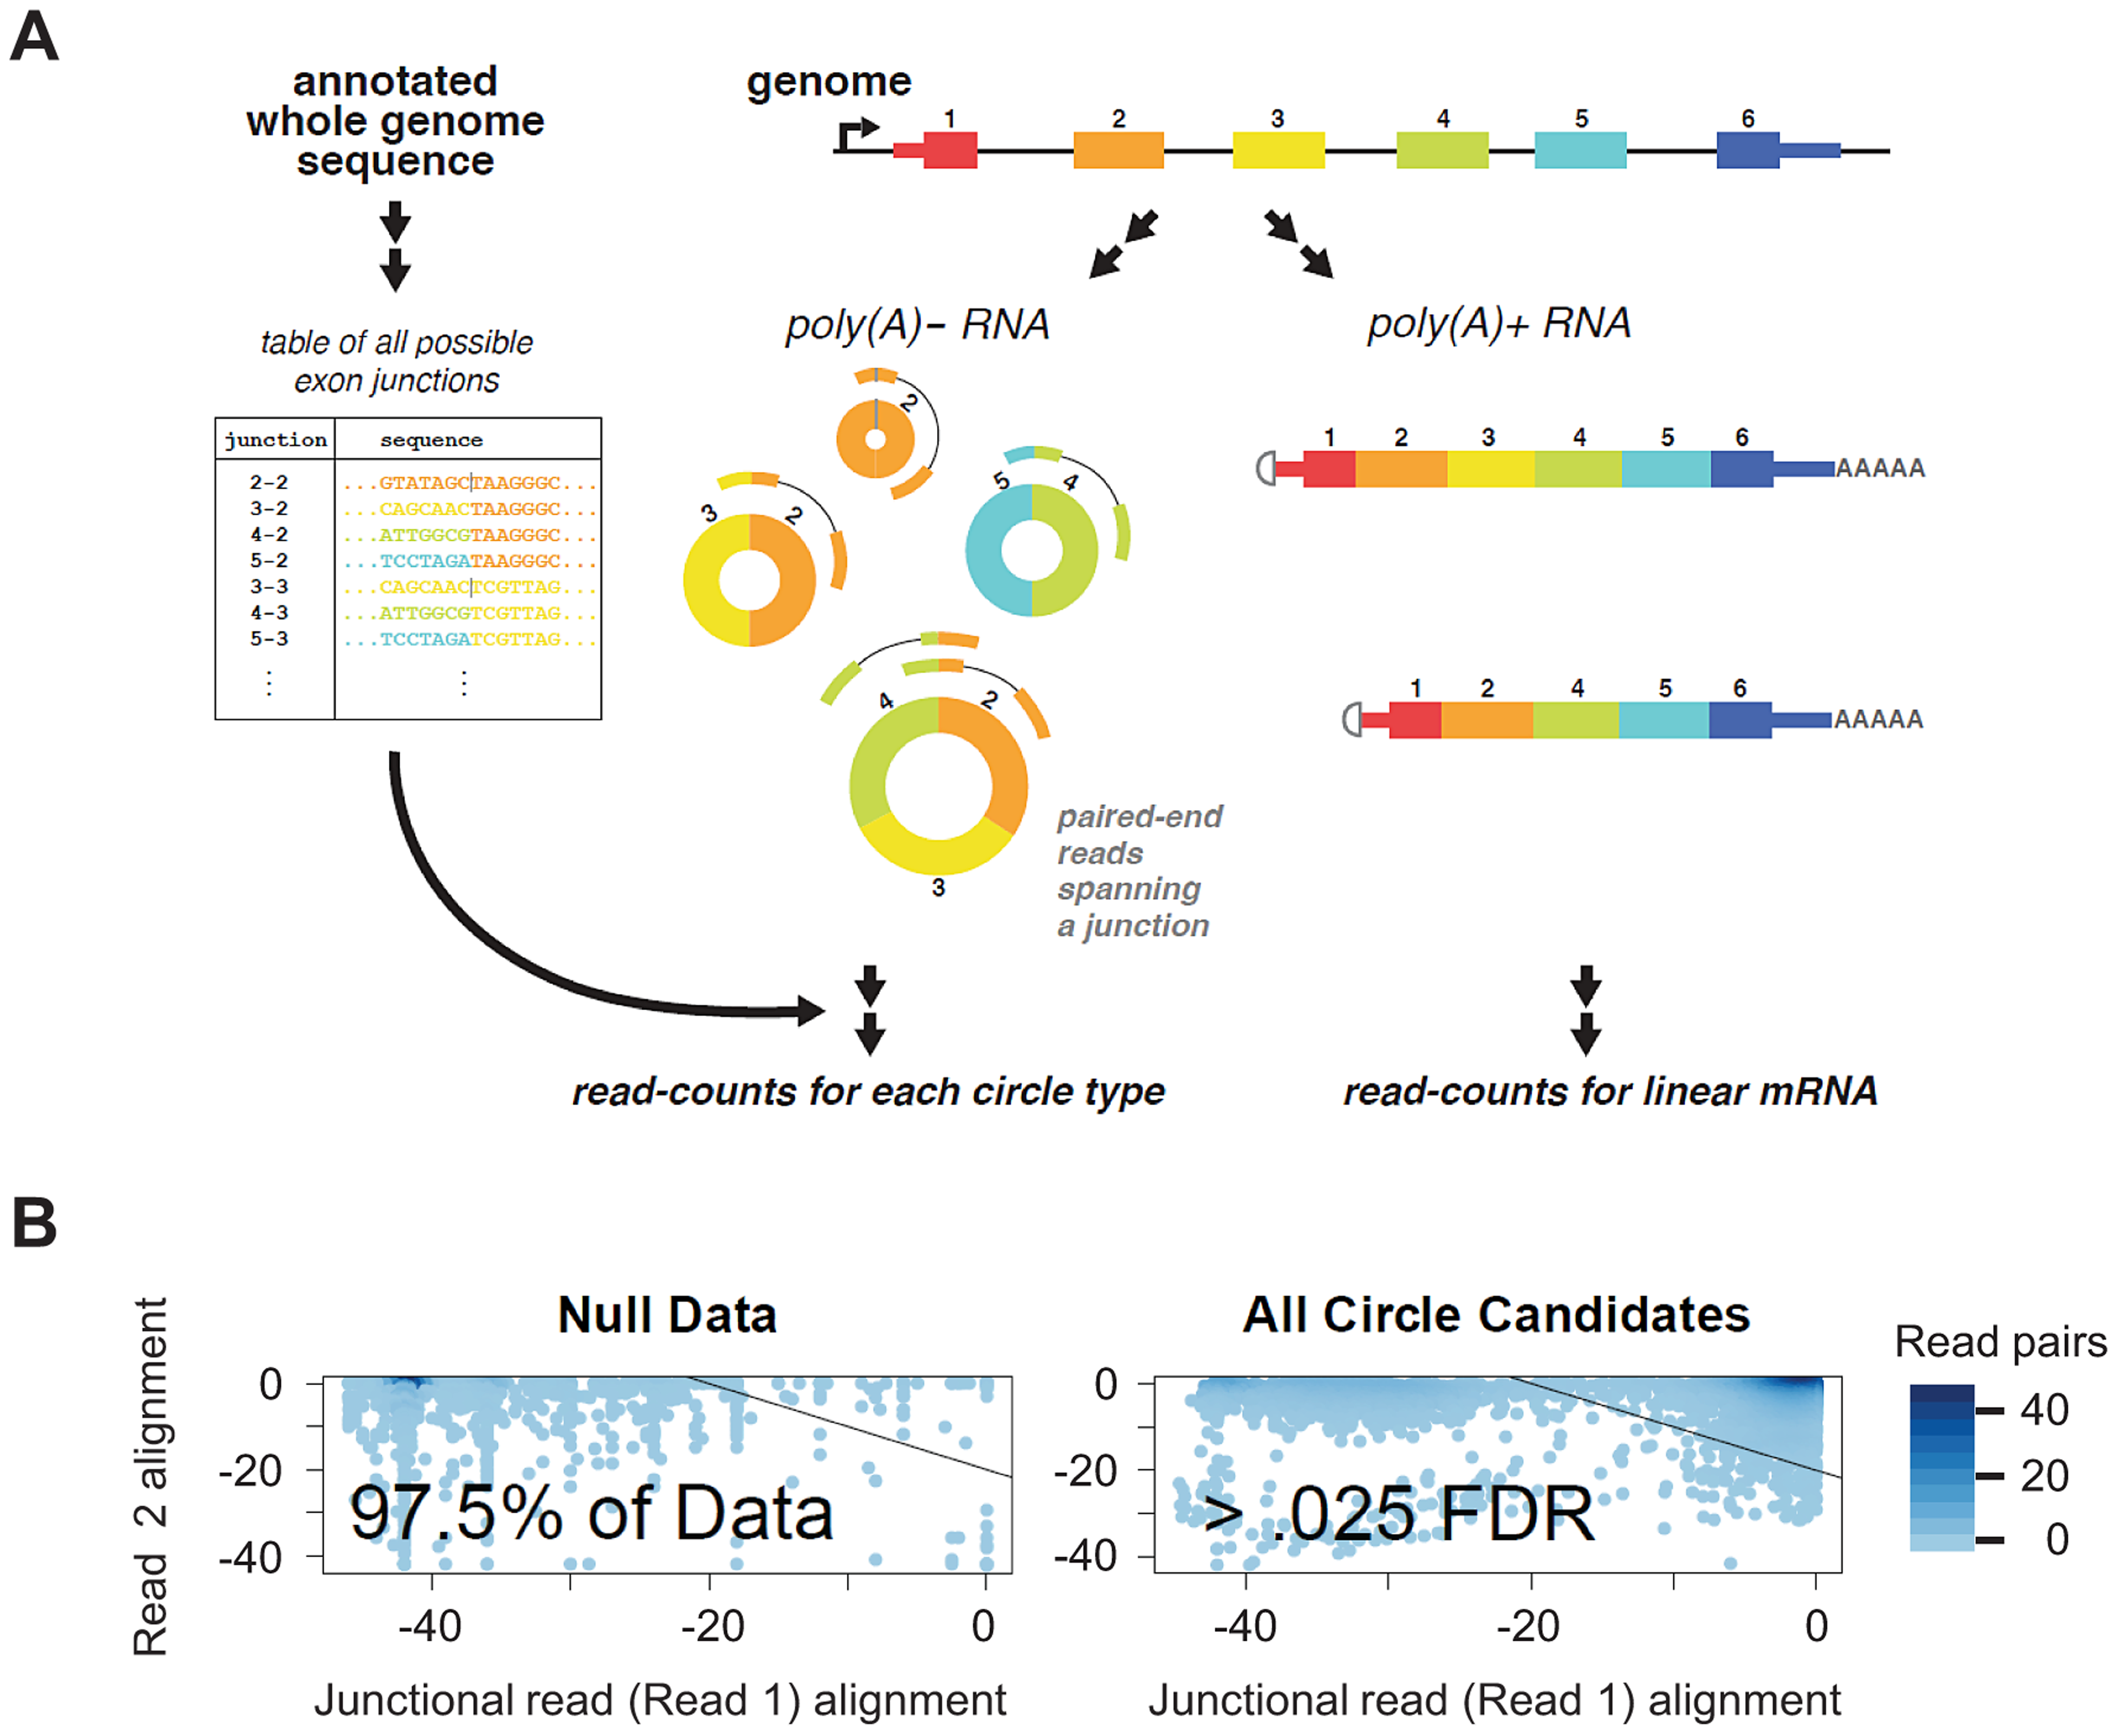 Bioinformatic and statistical method for detecting circular isoforms.